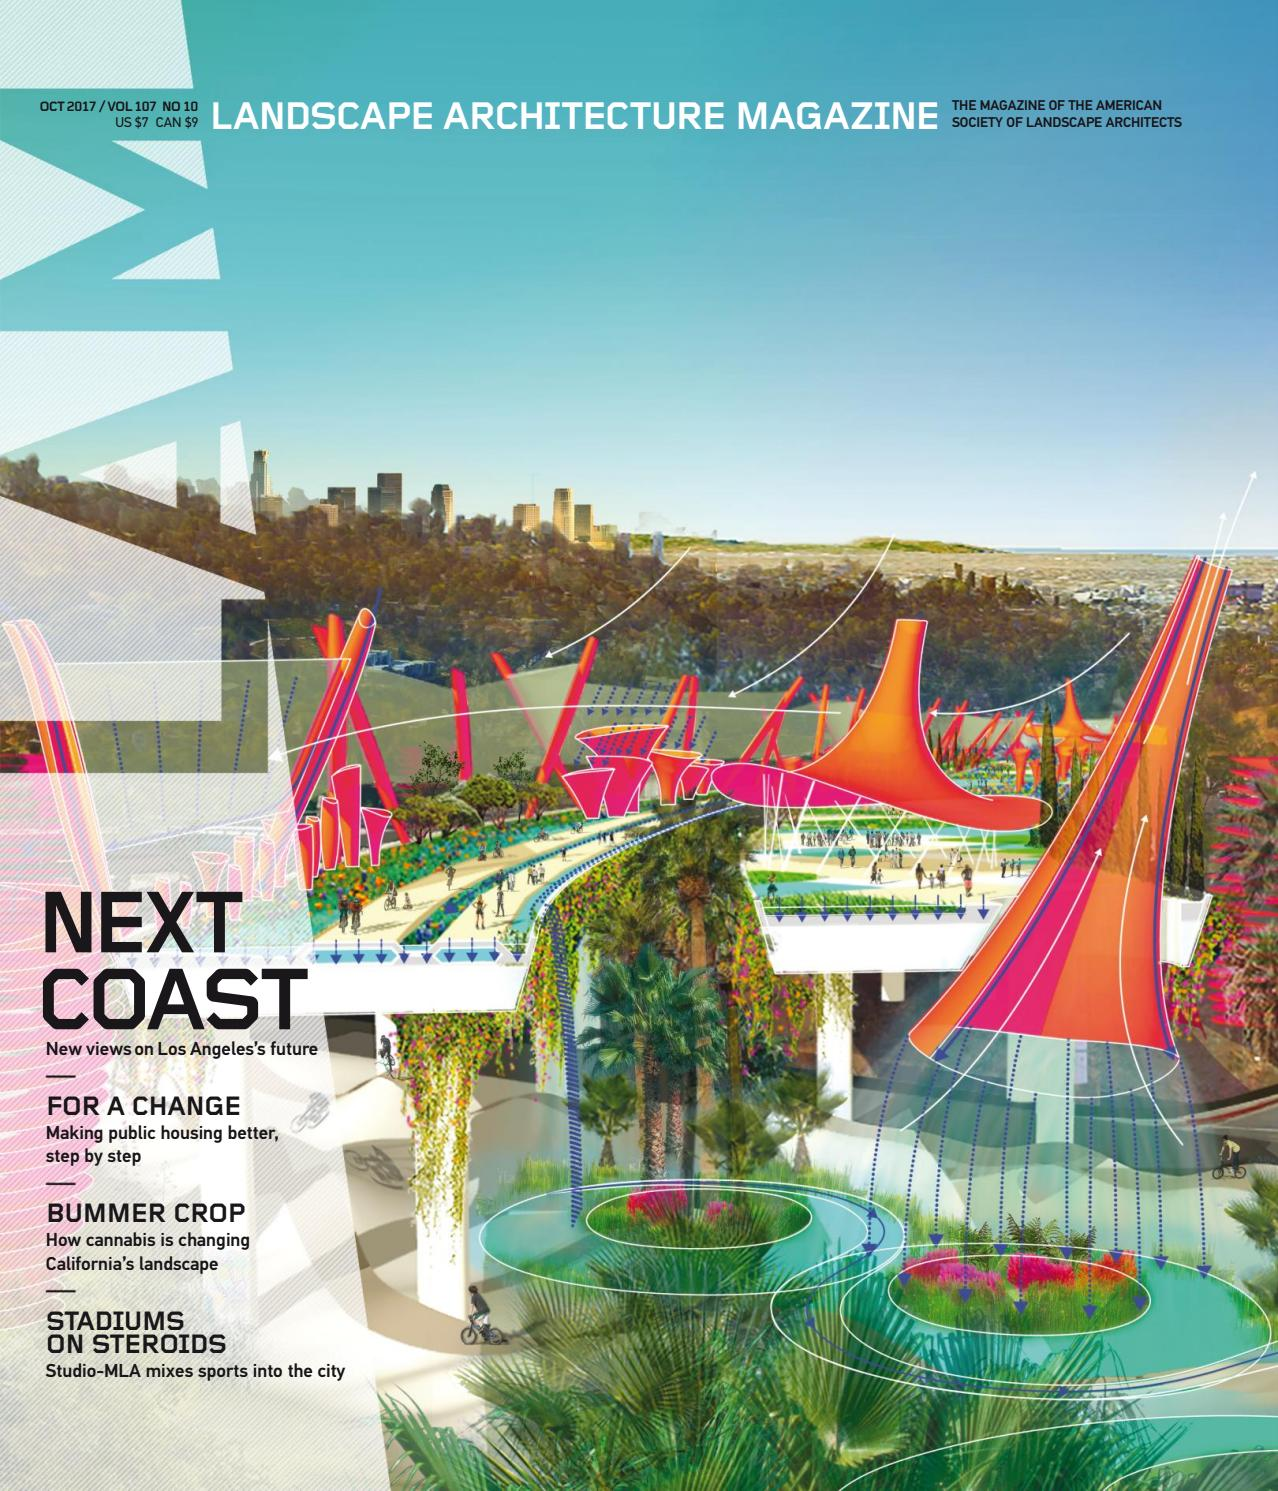 Landscape Architecture Magazine LAM-2017-october by KiếnTrúc